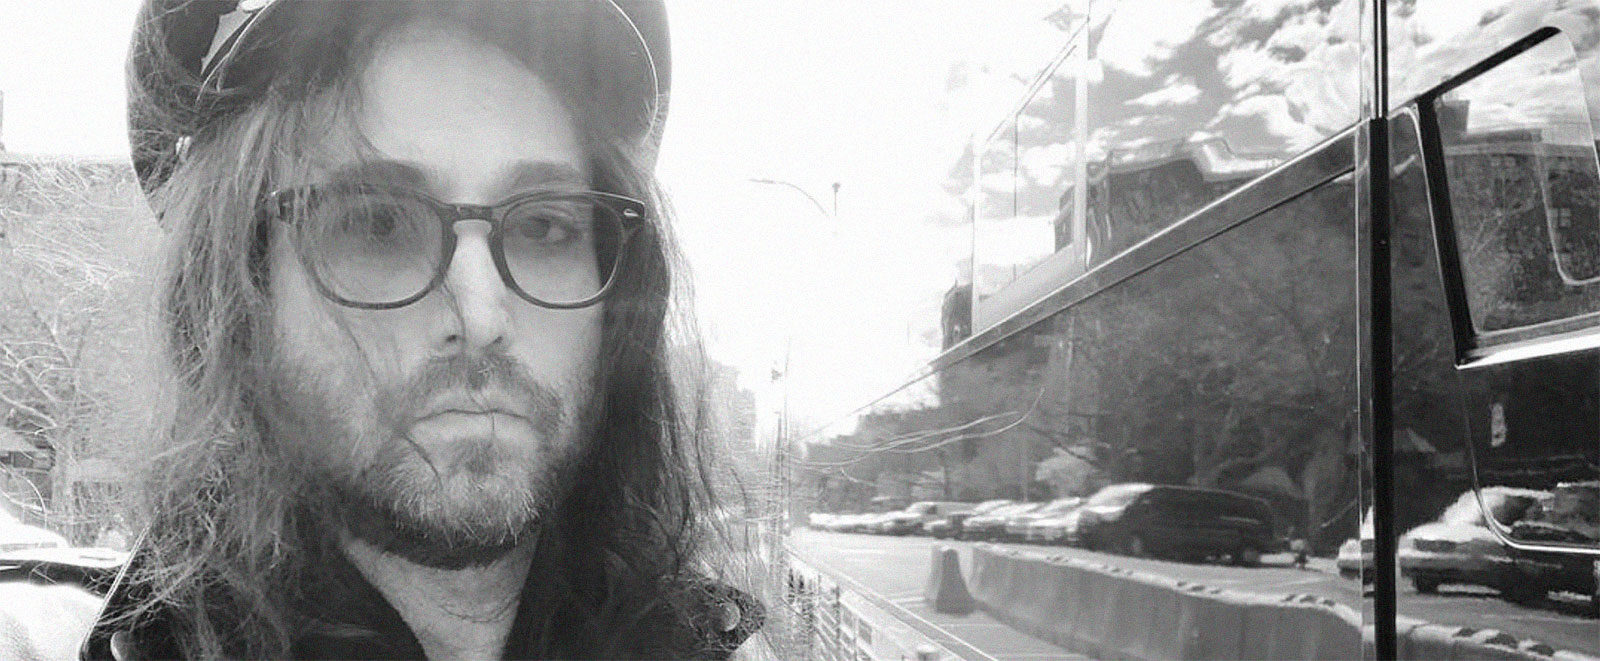 Sean Ono Lennon GrandLife Roxy Hotel Playlist